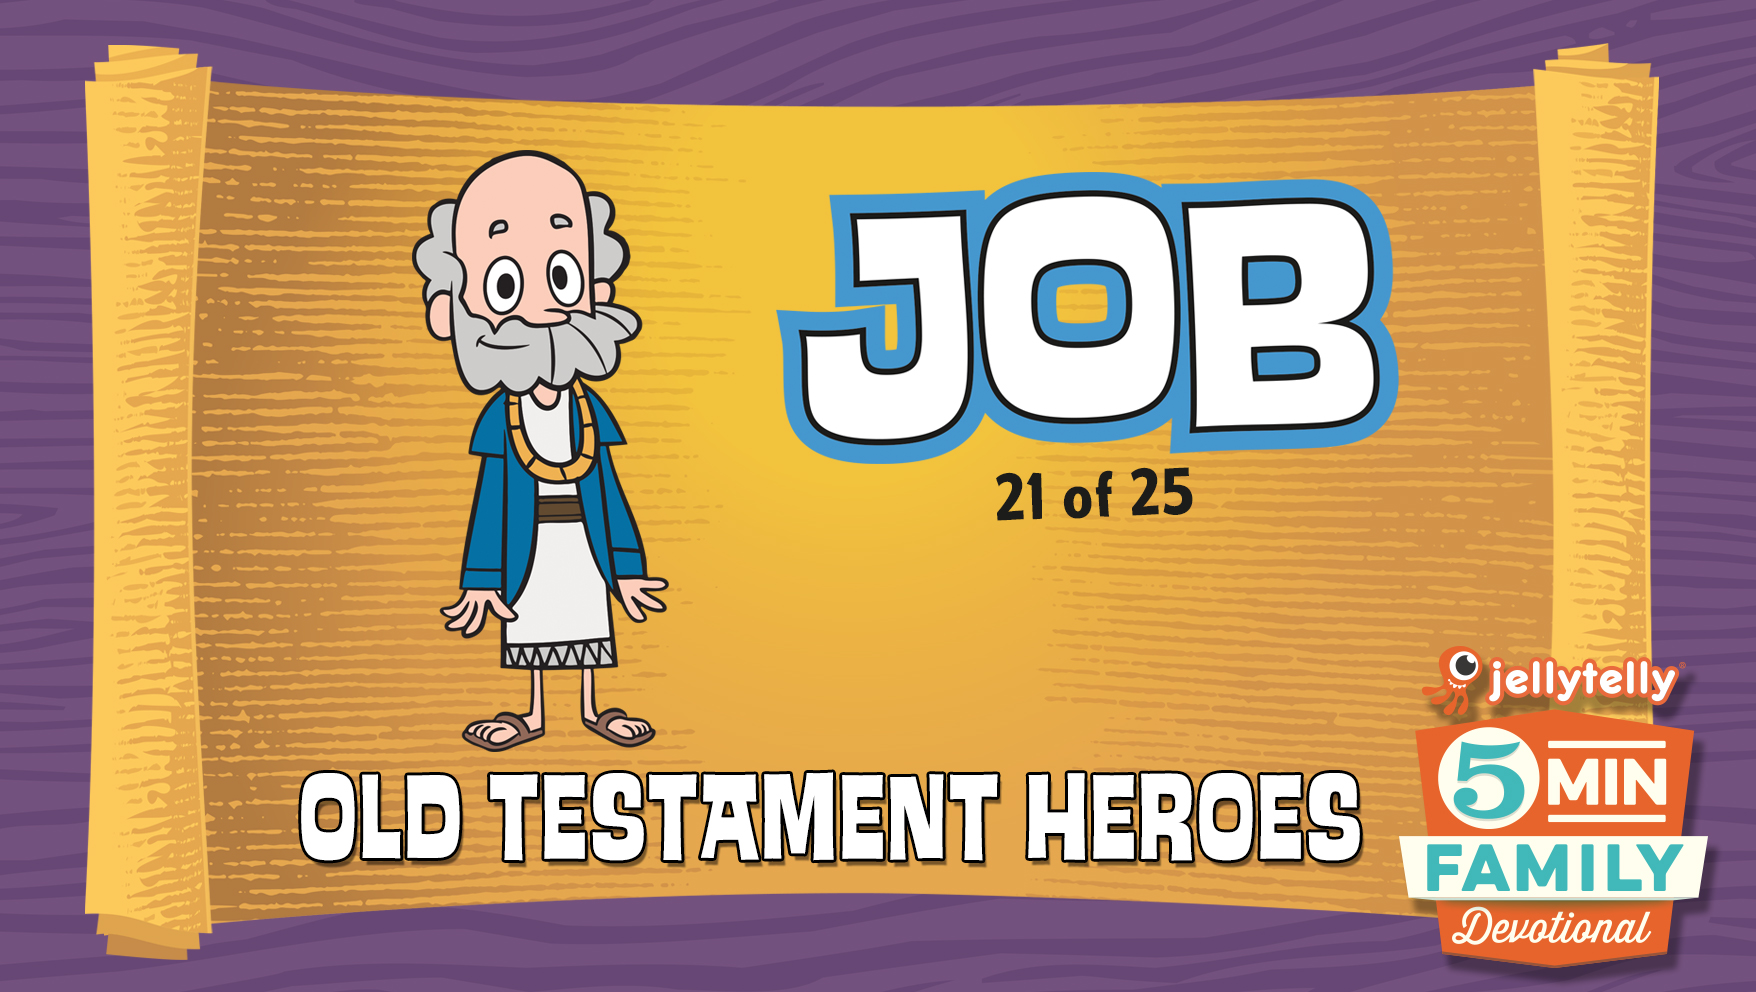 Job: Old Testament Heroes - 5 Minute Family Devotional